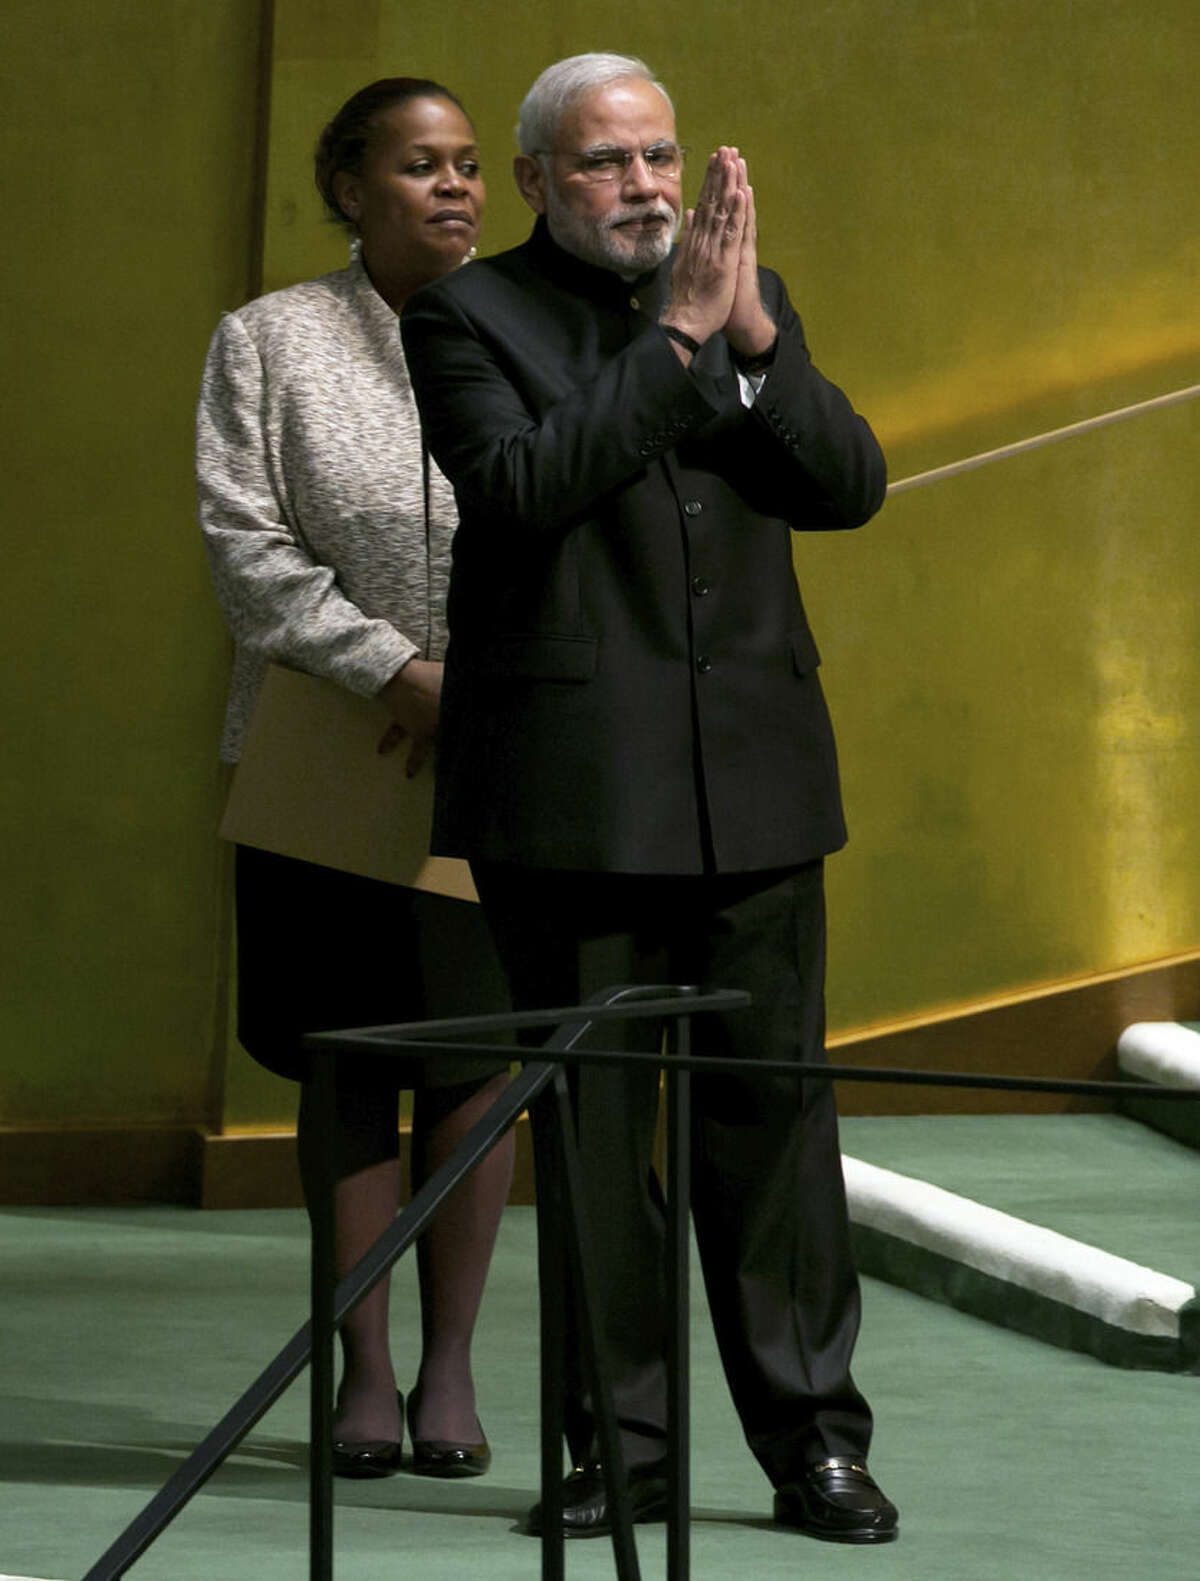 Prime Minister Narendra Modi, of India, acknowledges the audience after his address to the 69th session of the United Nations General Assembly, at U.N. headquarters, Saturday, Sept. 27, 2014. (AP Photo/Richard Drew)